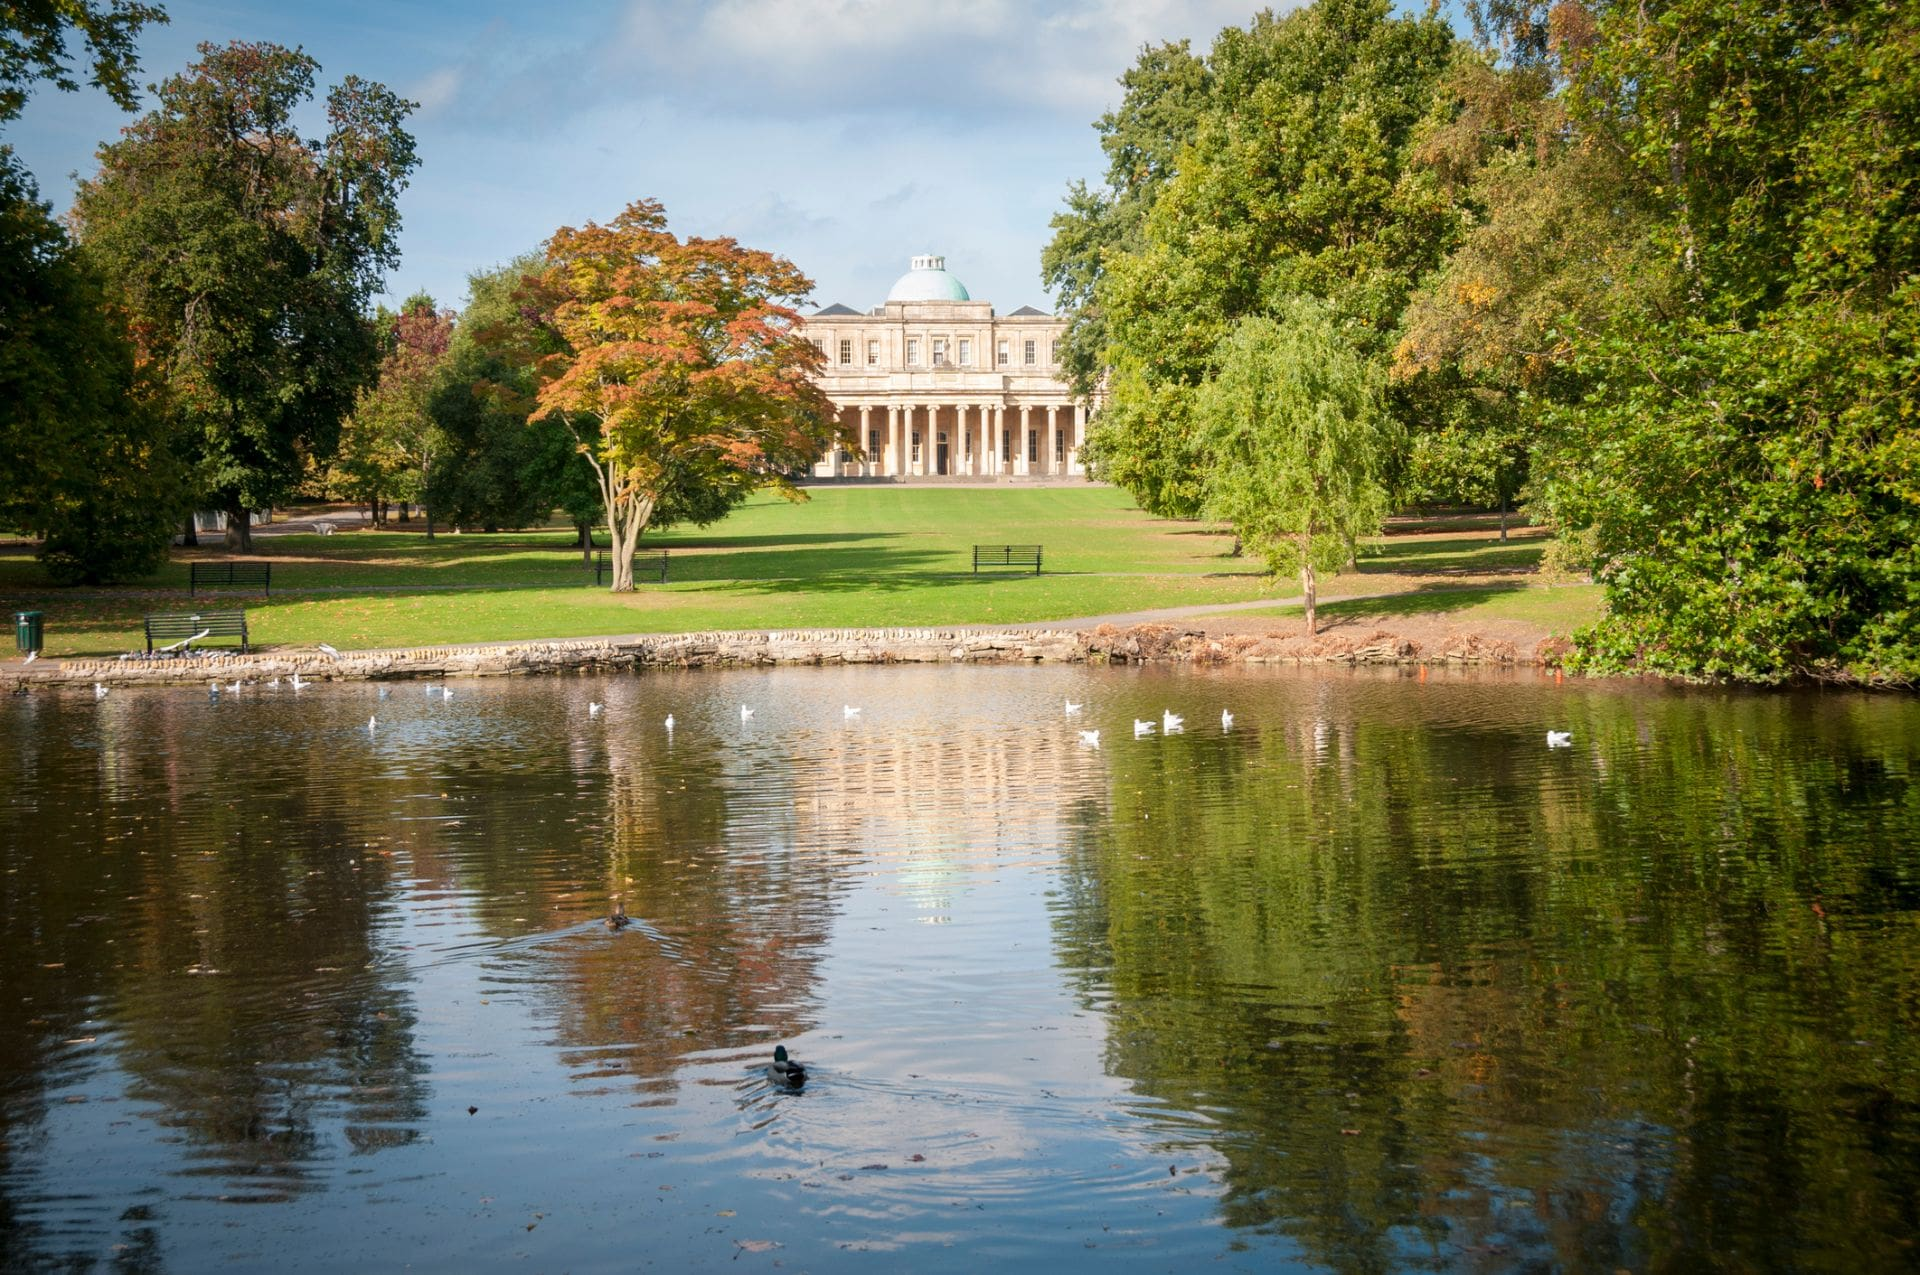 old-historic-building-overlooking-lake-in-autumn-at-pittville-park-in-cheltenham